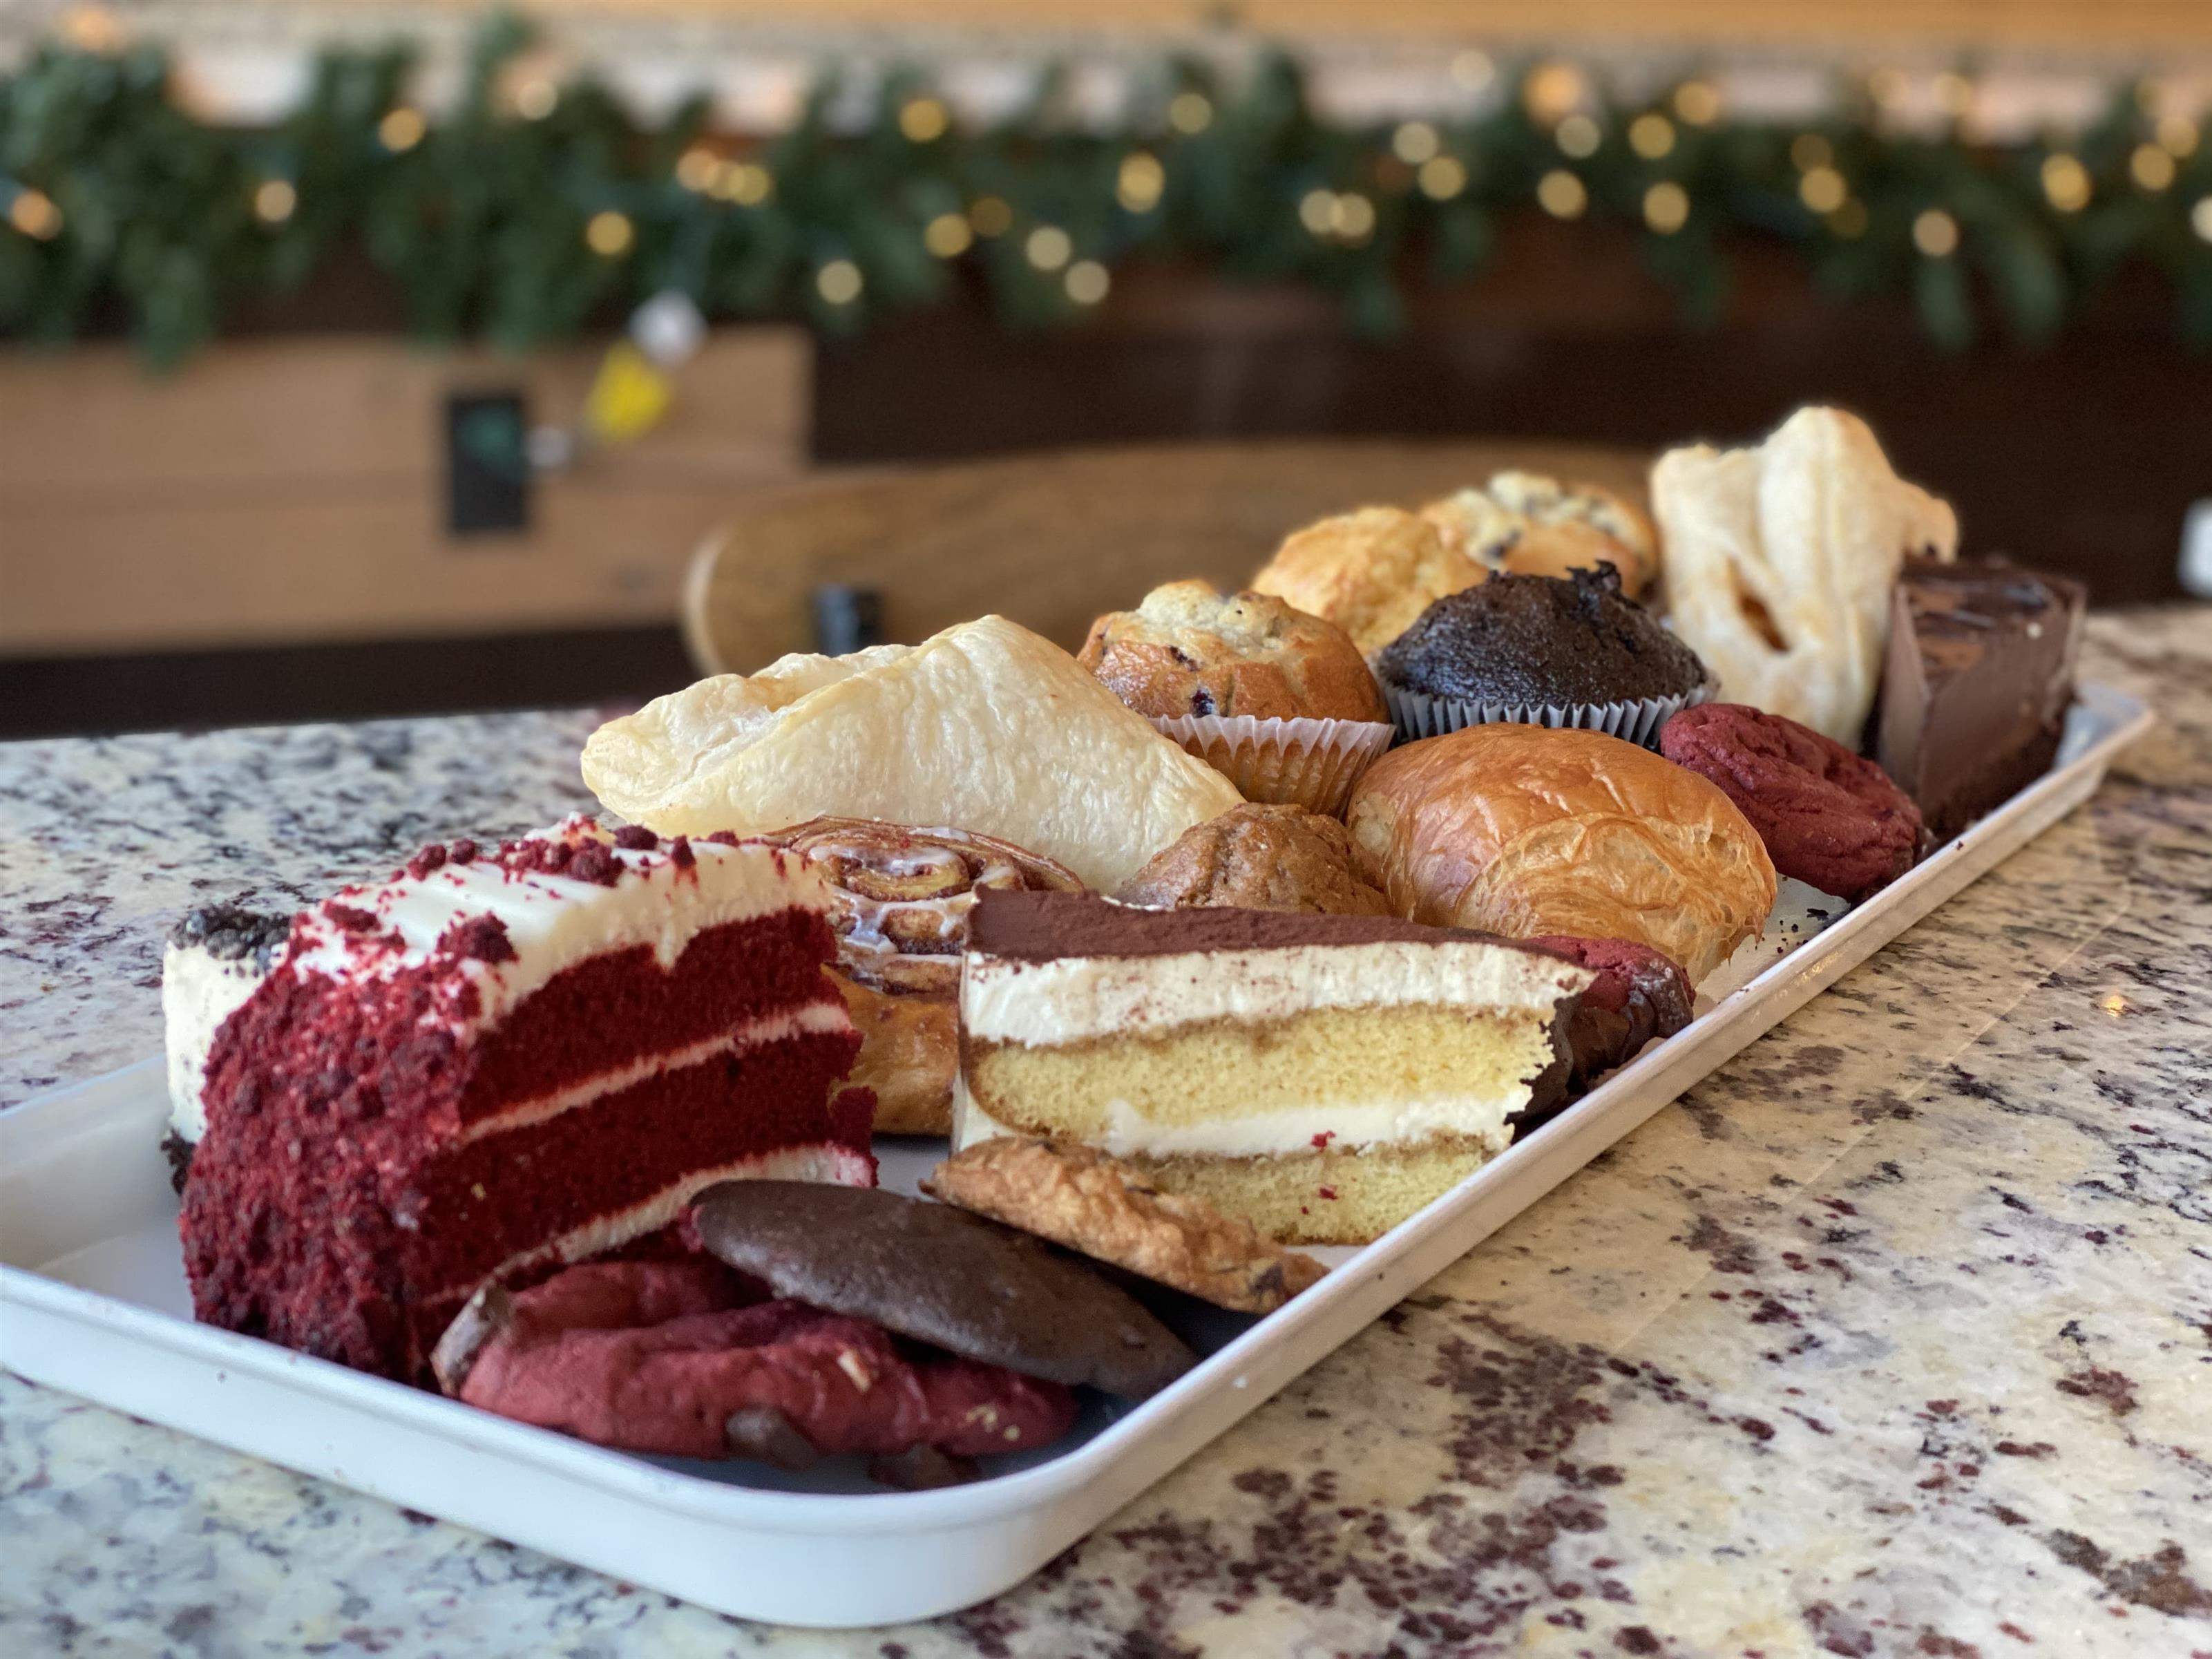 tray of a variety of cakes and pastries